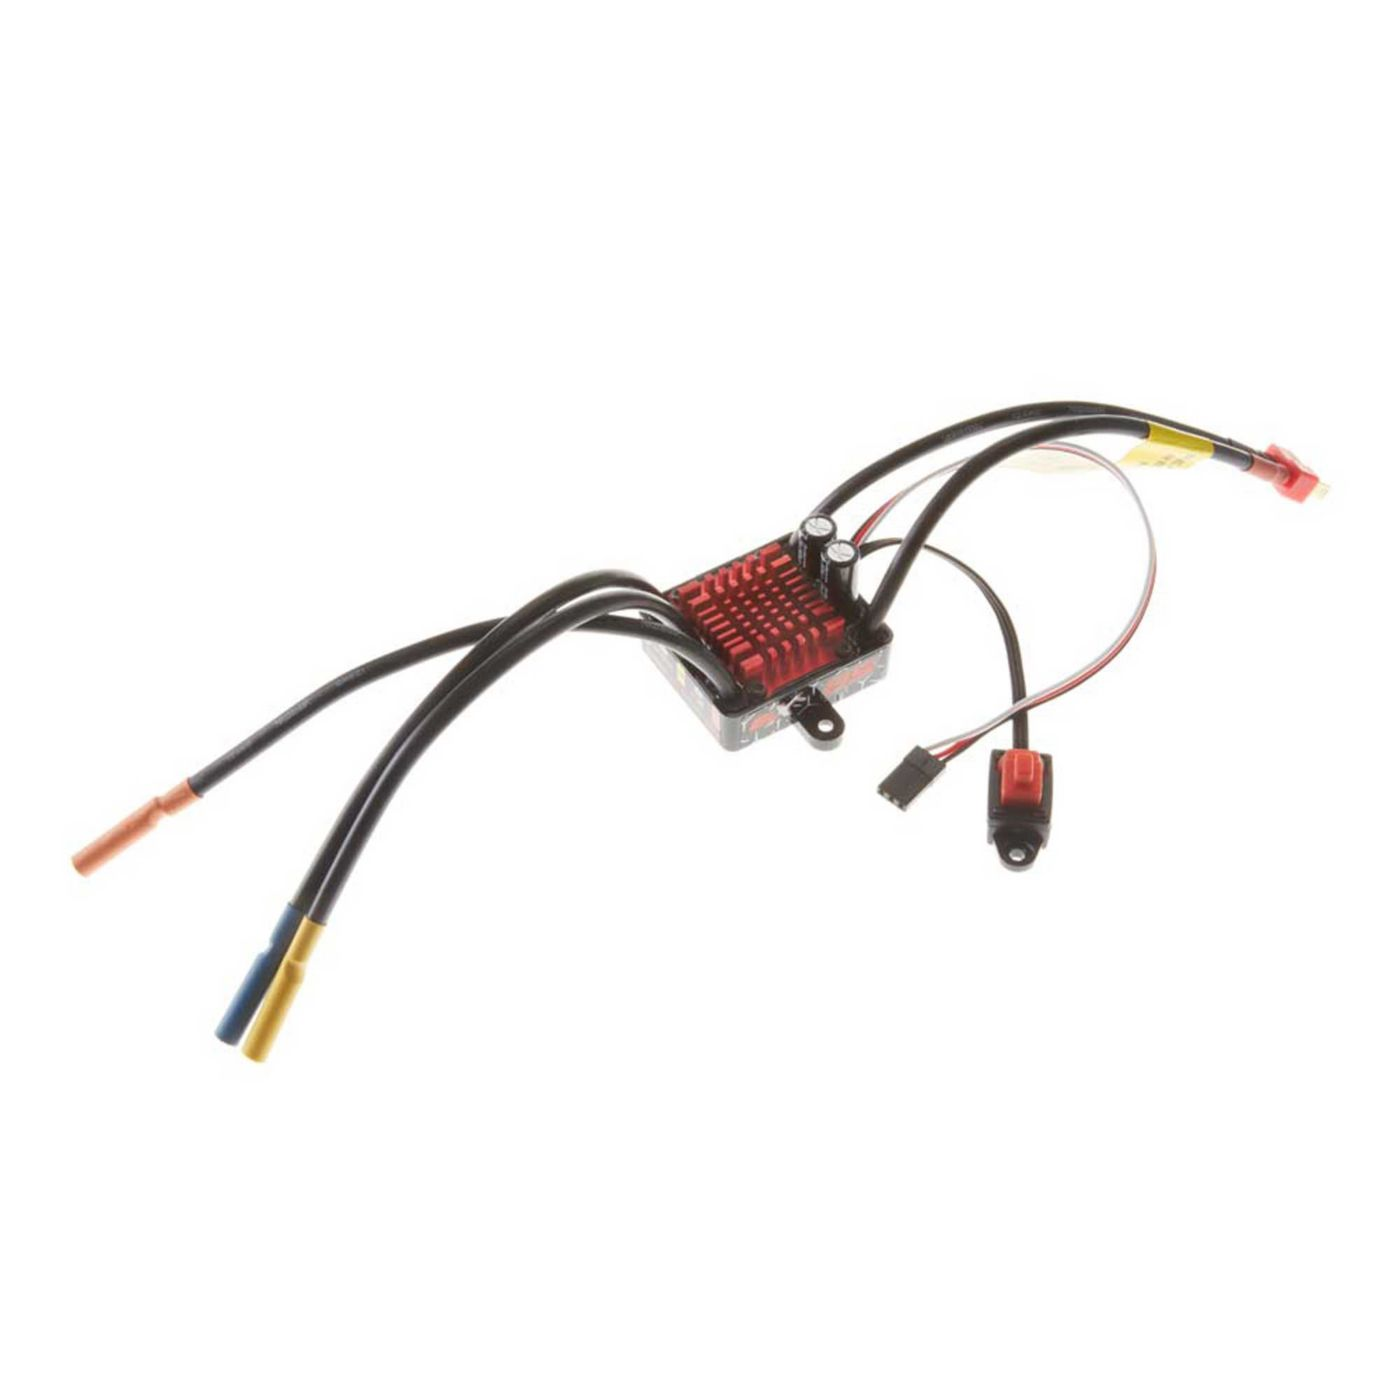 Ar Blx85 Brushless Esc